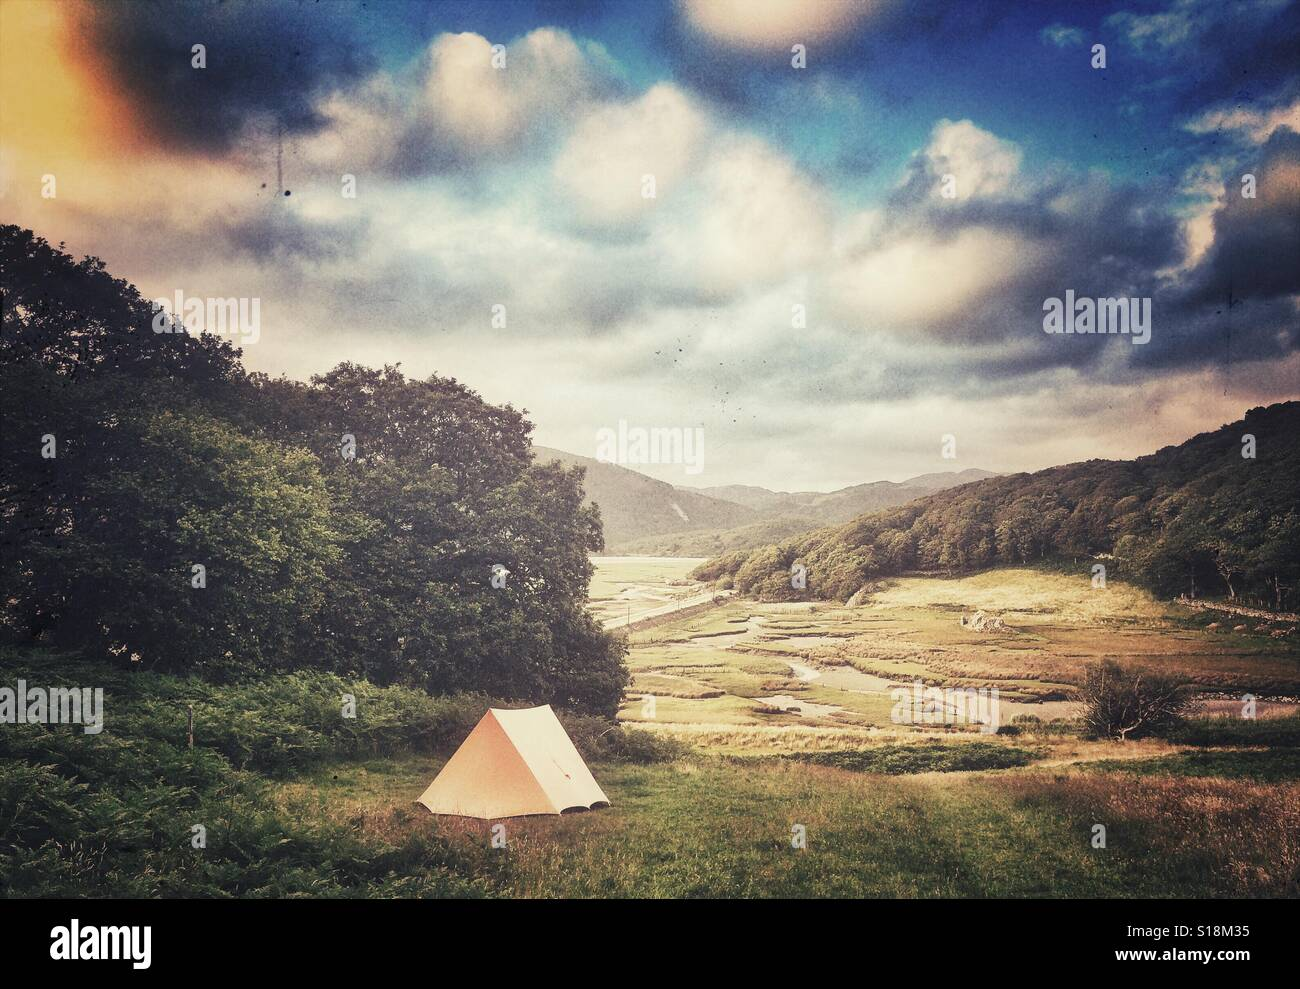 A single tent in a field near Barmouth, Wales - Stock Image